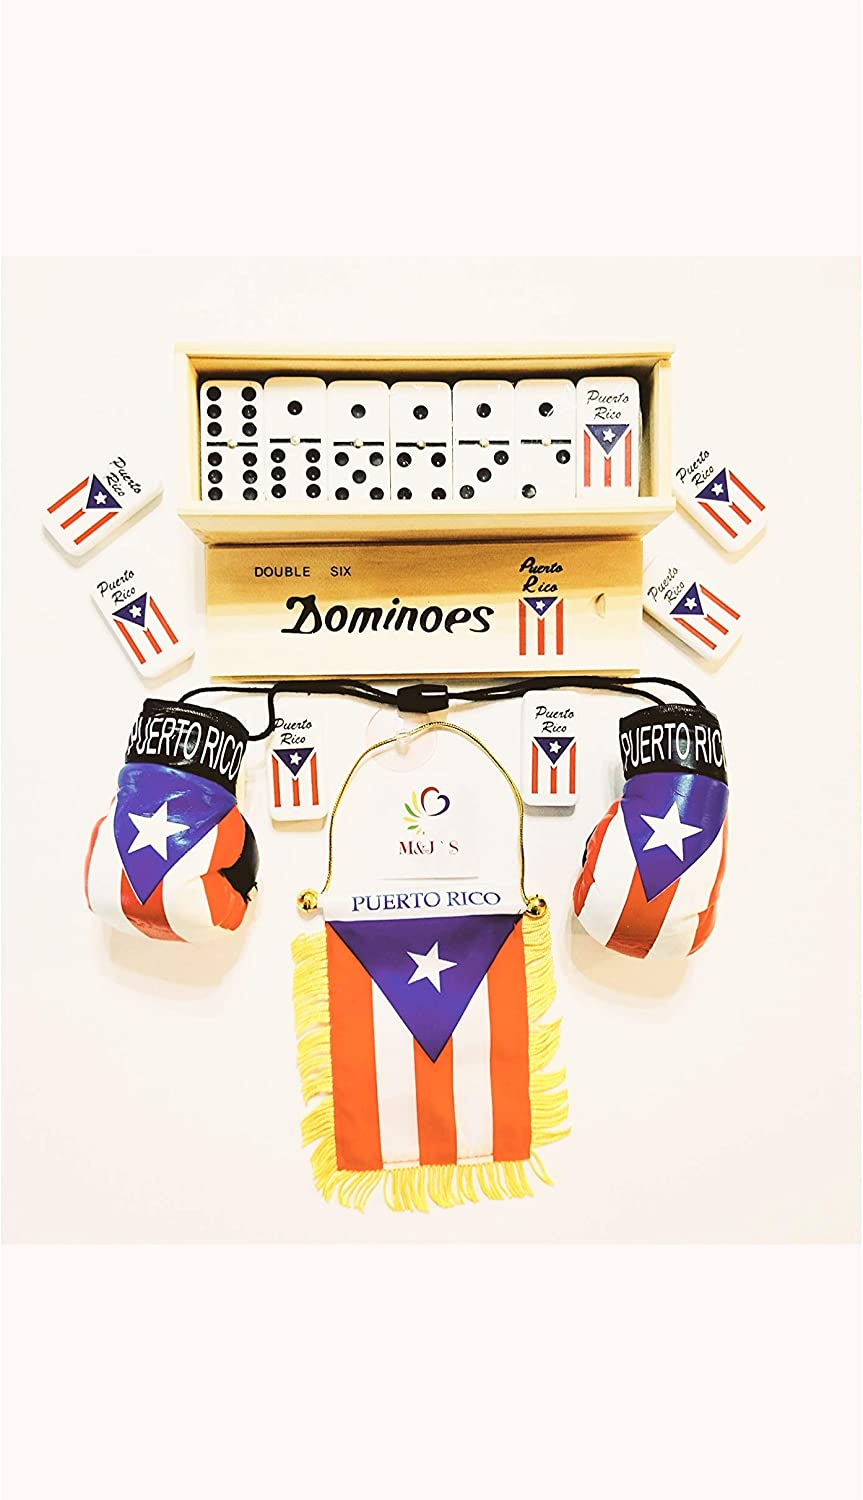 Puerto RICO Double SIX Domino Set Regular Size {NOT Big} with Puerto RICO Mini Flag and Mini Boxing Gloves